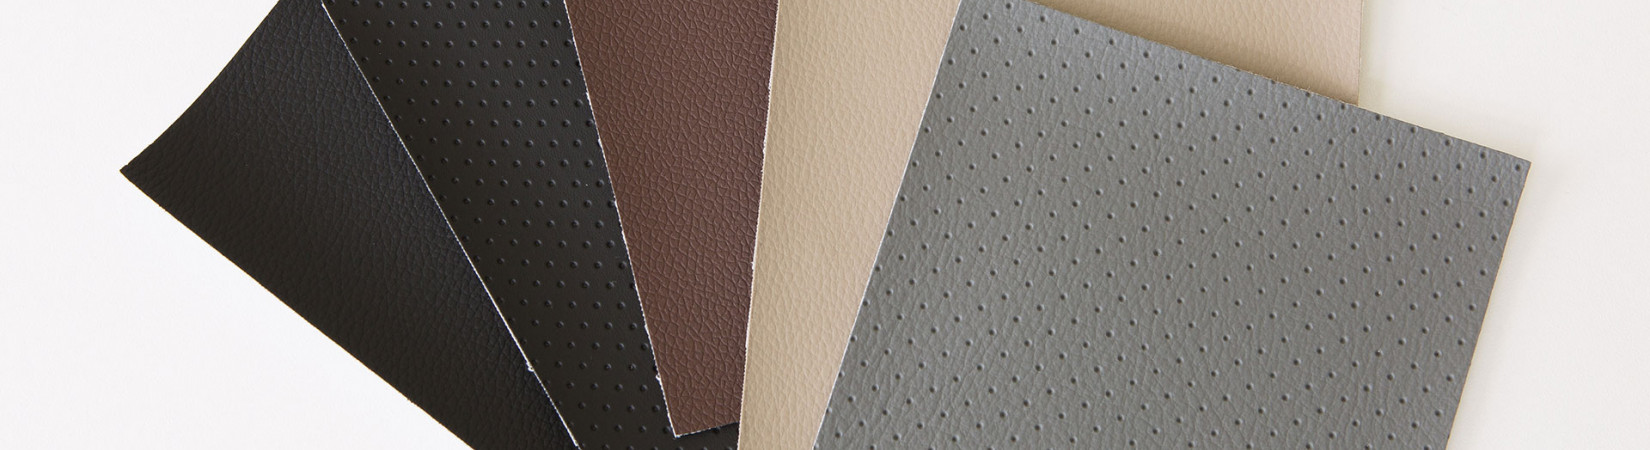 Automotive Artificial Leather